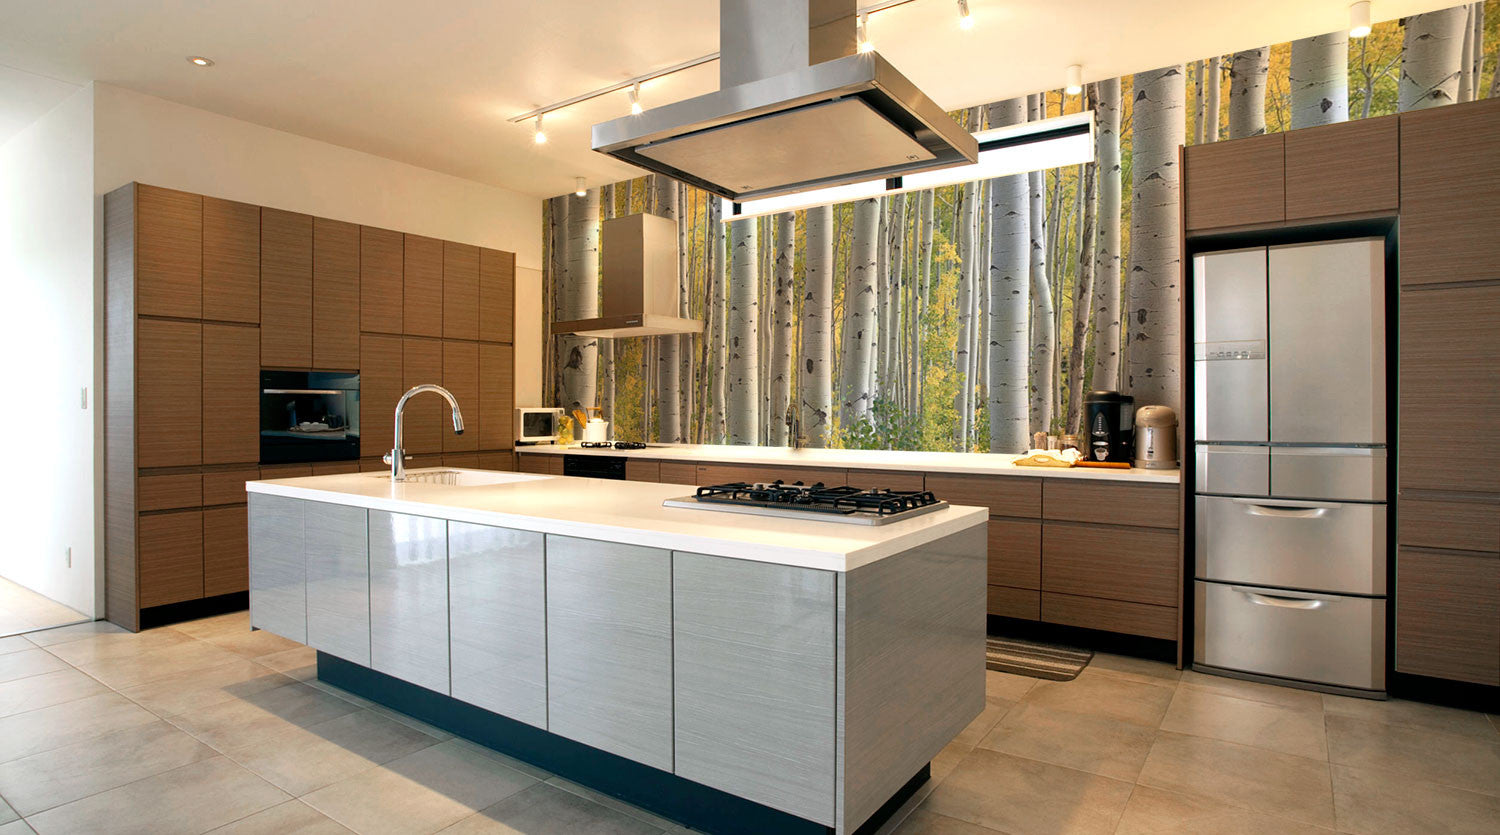 wall murals custom wall murals removable wallpaper eazywallz kitchen wall murals